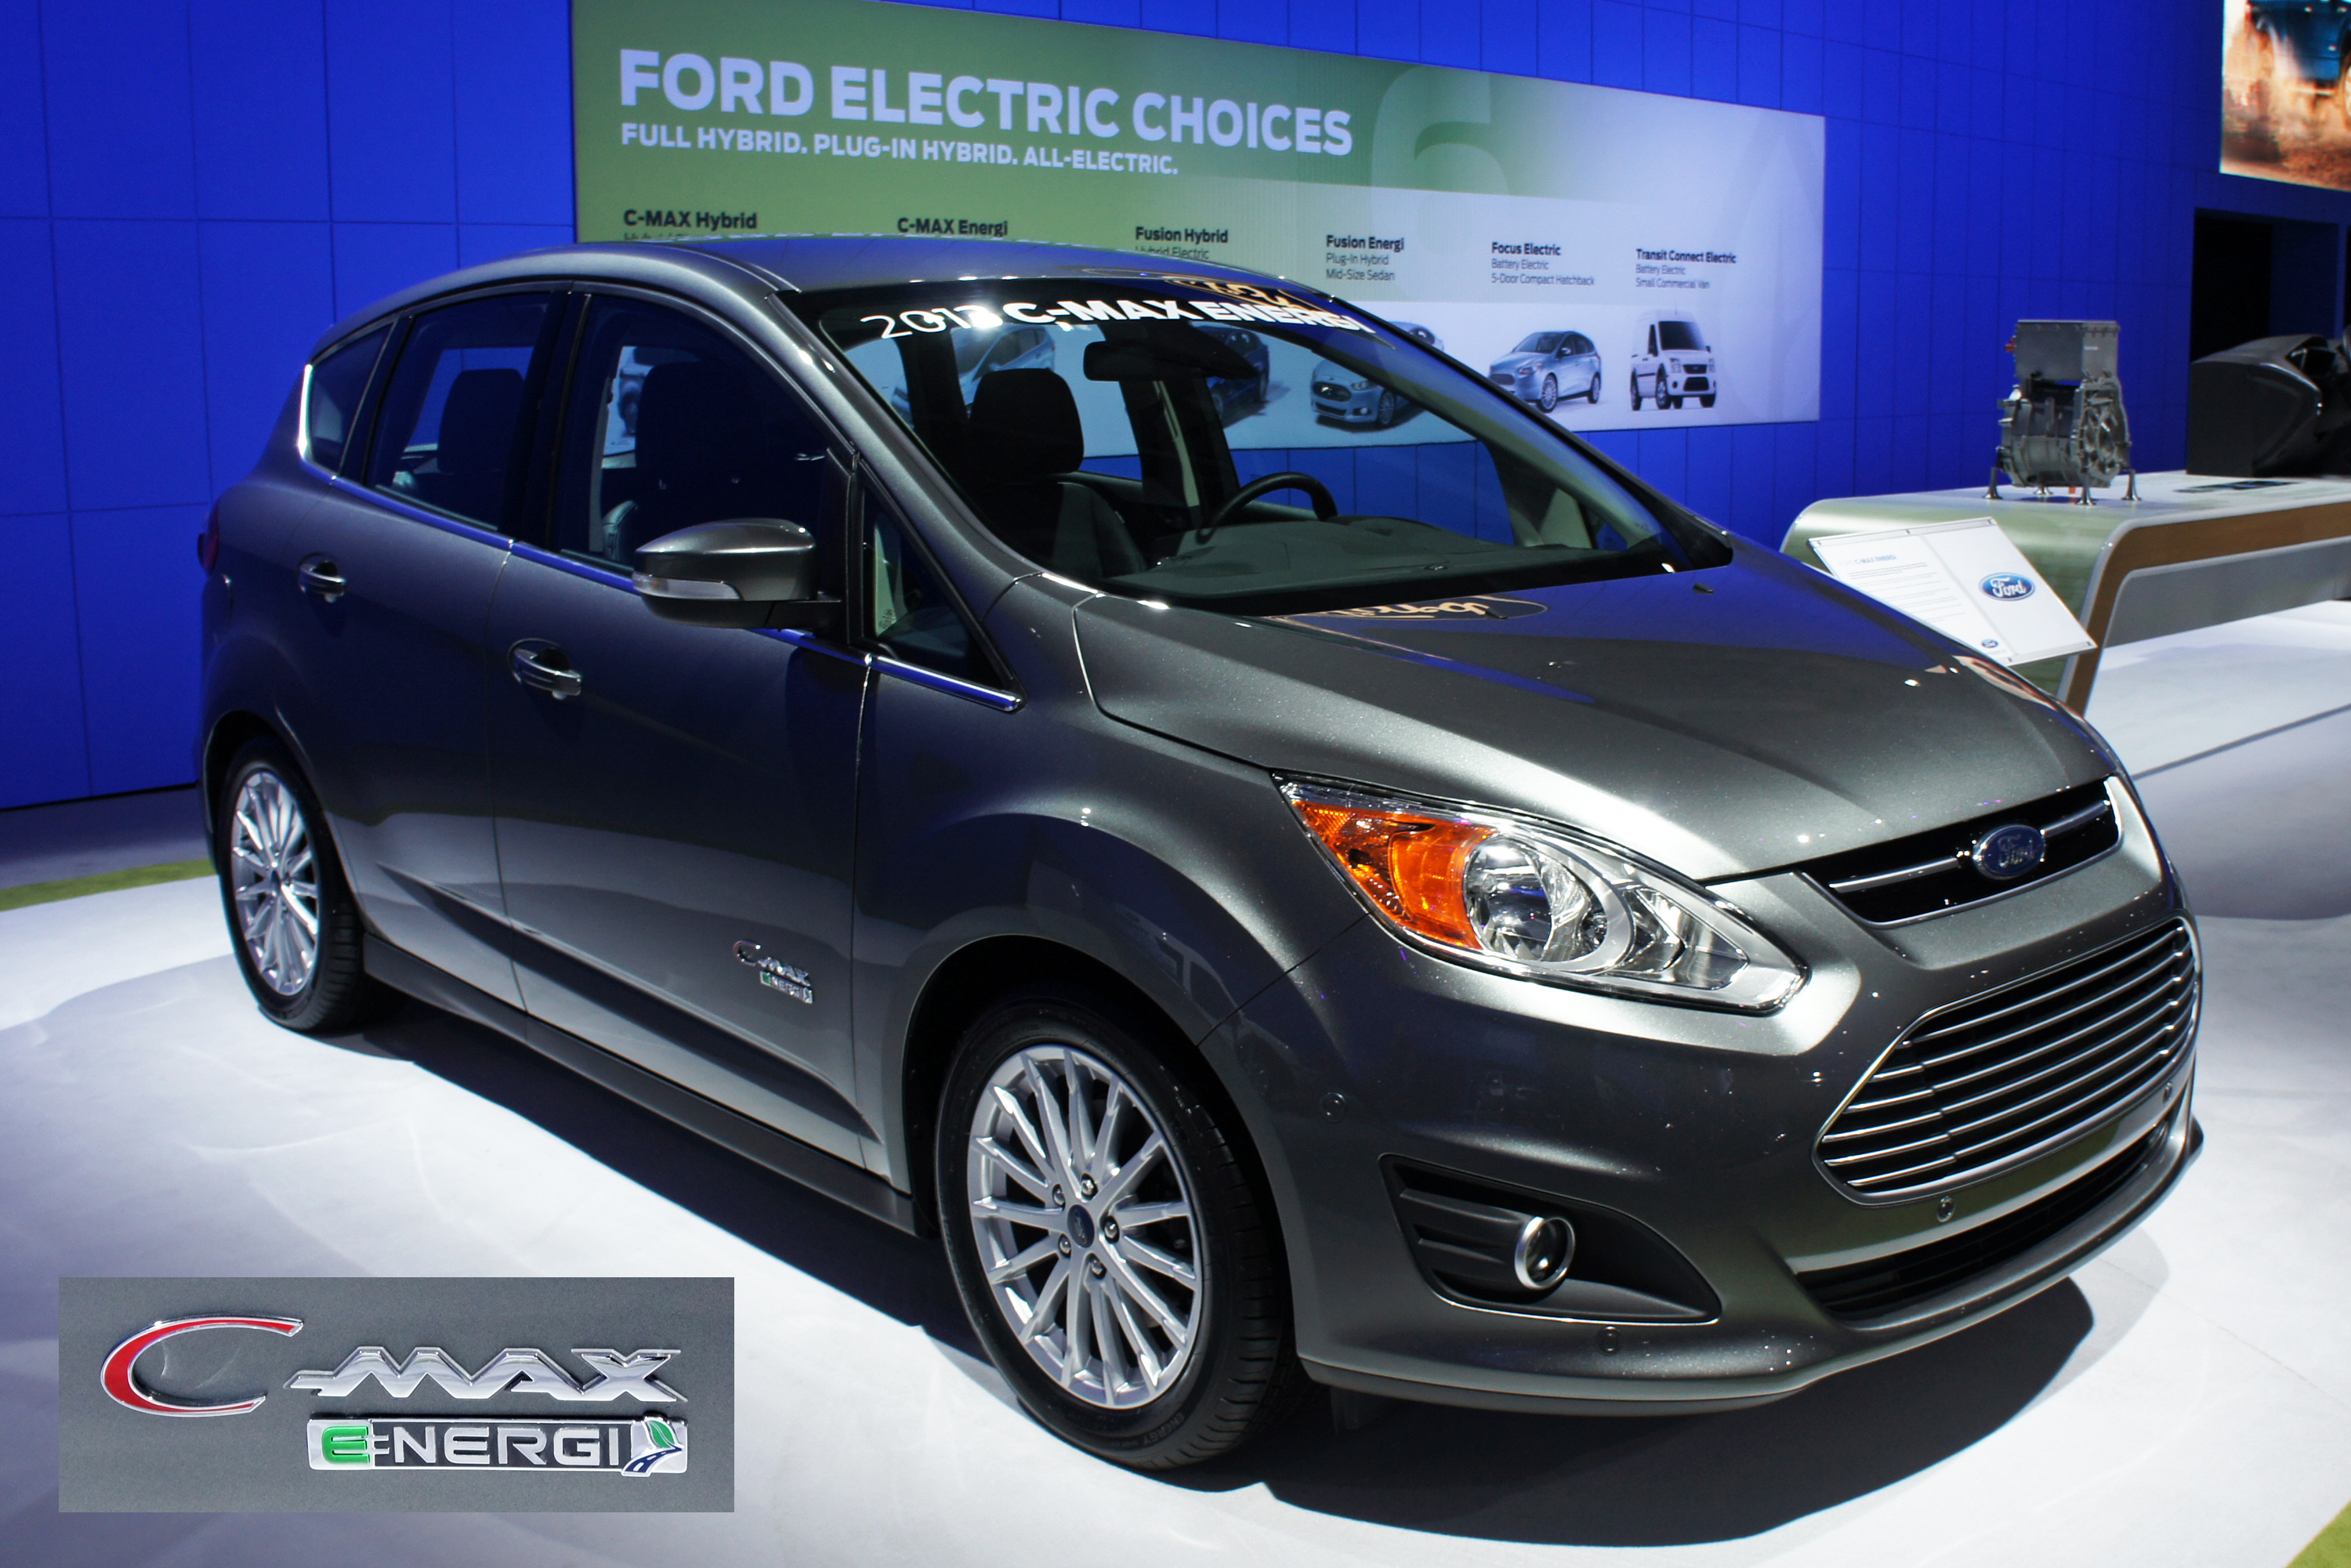 2013 Ford C-MAX #16